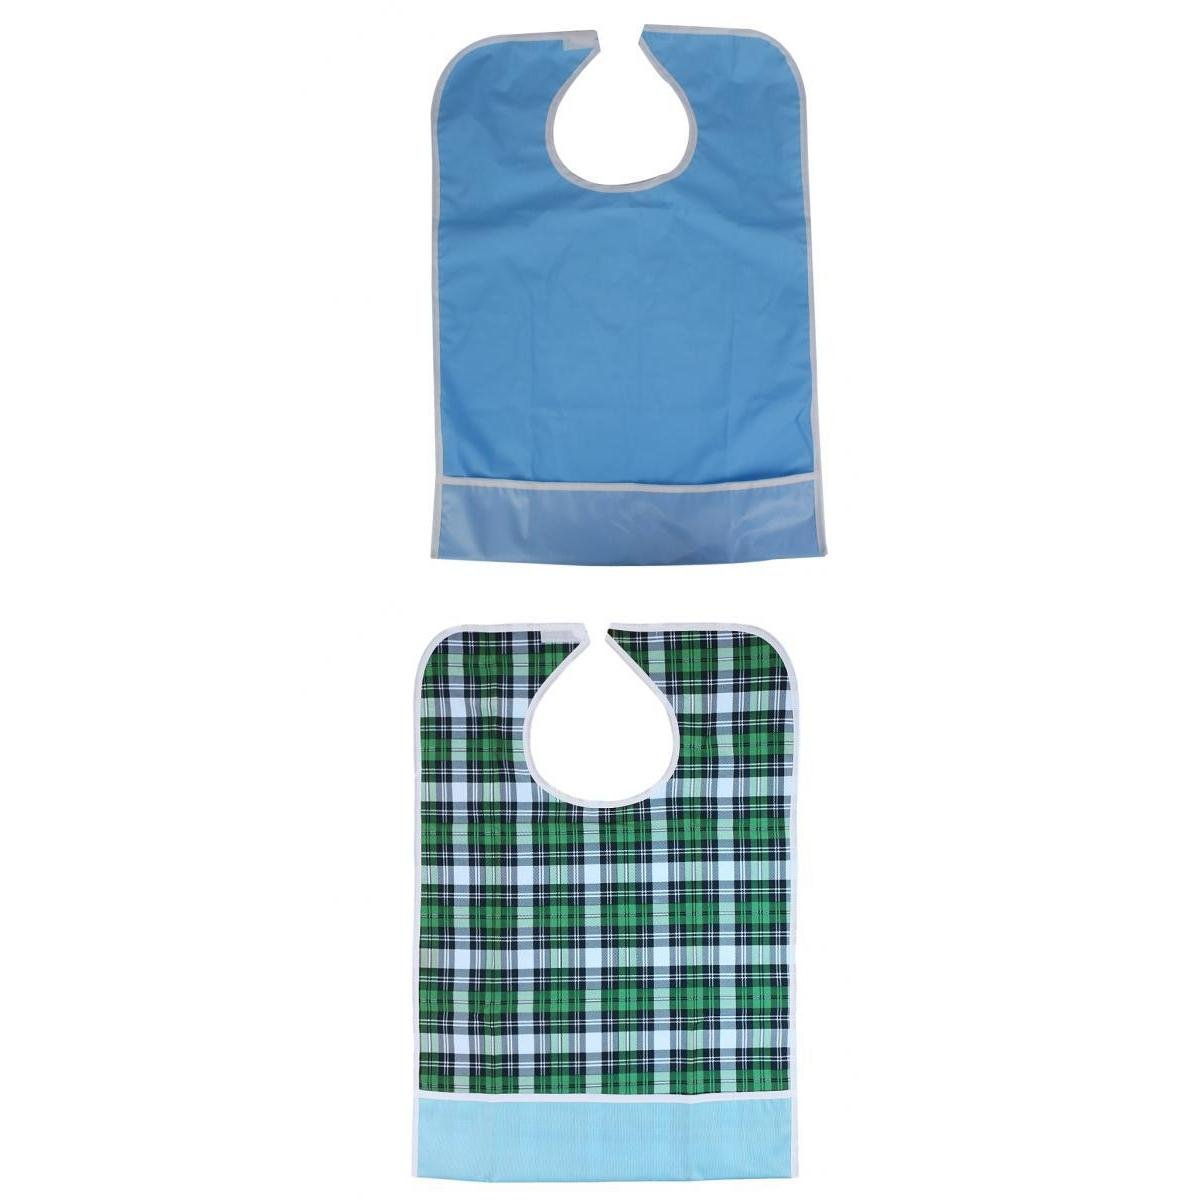 MagiDeal 2 Pieces Adult Reusable Eating Bibs Elderly Disability Aid Apron with Catch Pocket Protect Clothes Effectively